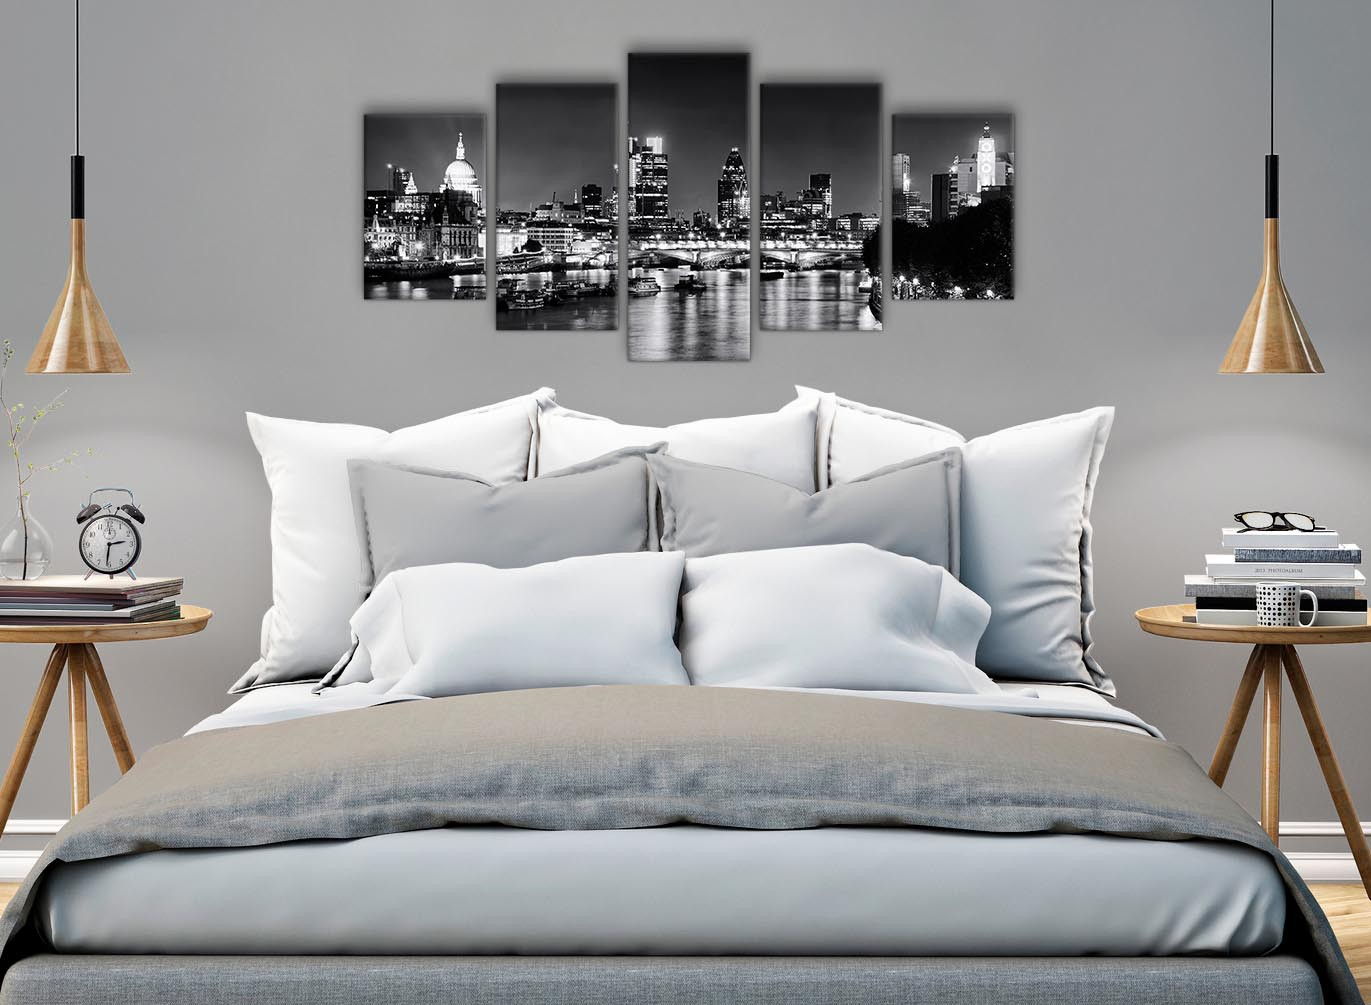 Black And White Artwork For Bedroom 5 Panel River Thames London Skyline Cityscape Canvas Wall Art Pictures 5430 Black White Grey 160cm Xl Set Artwork